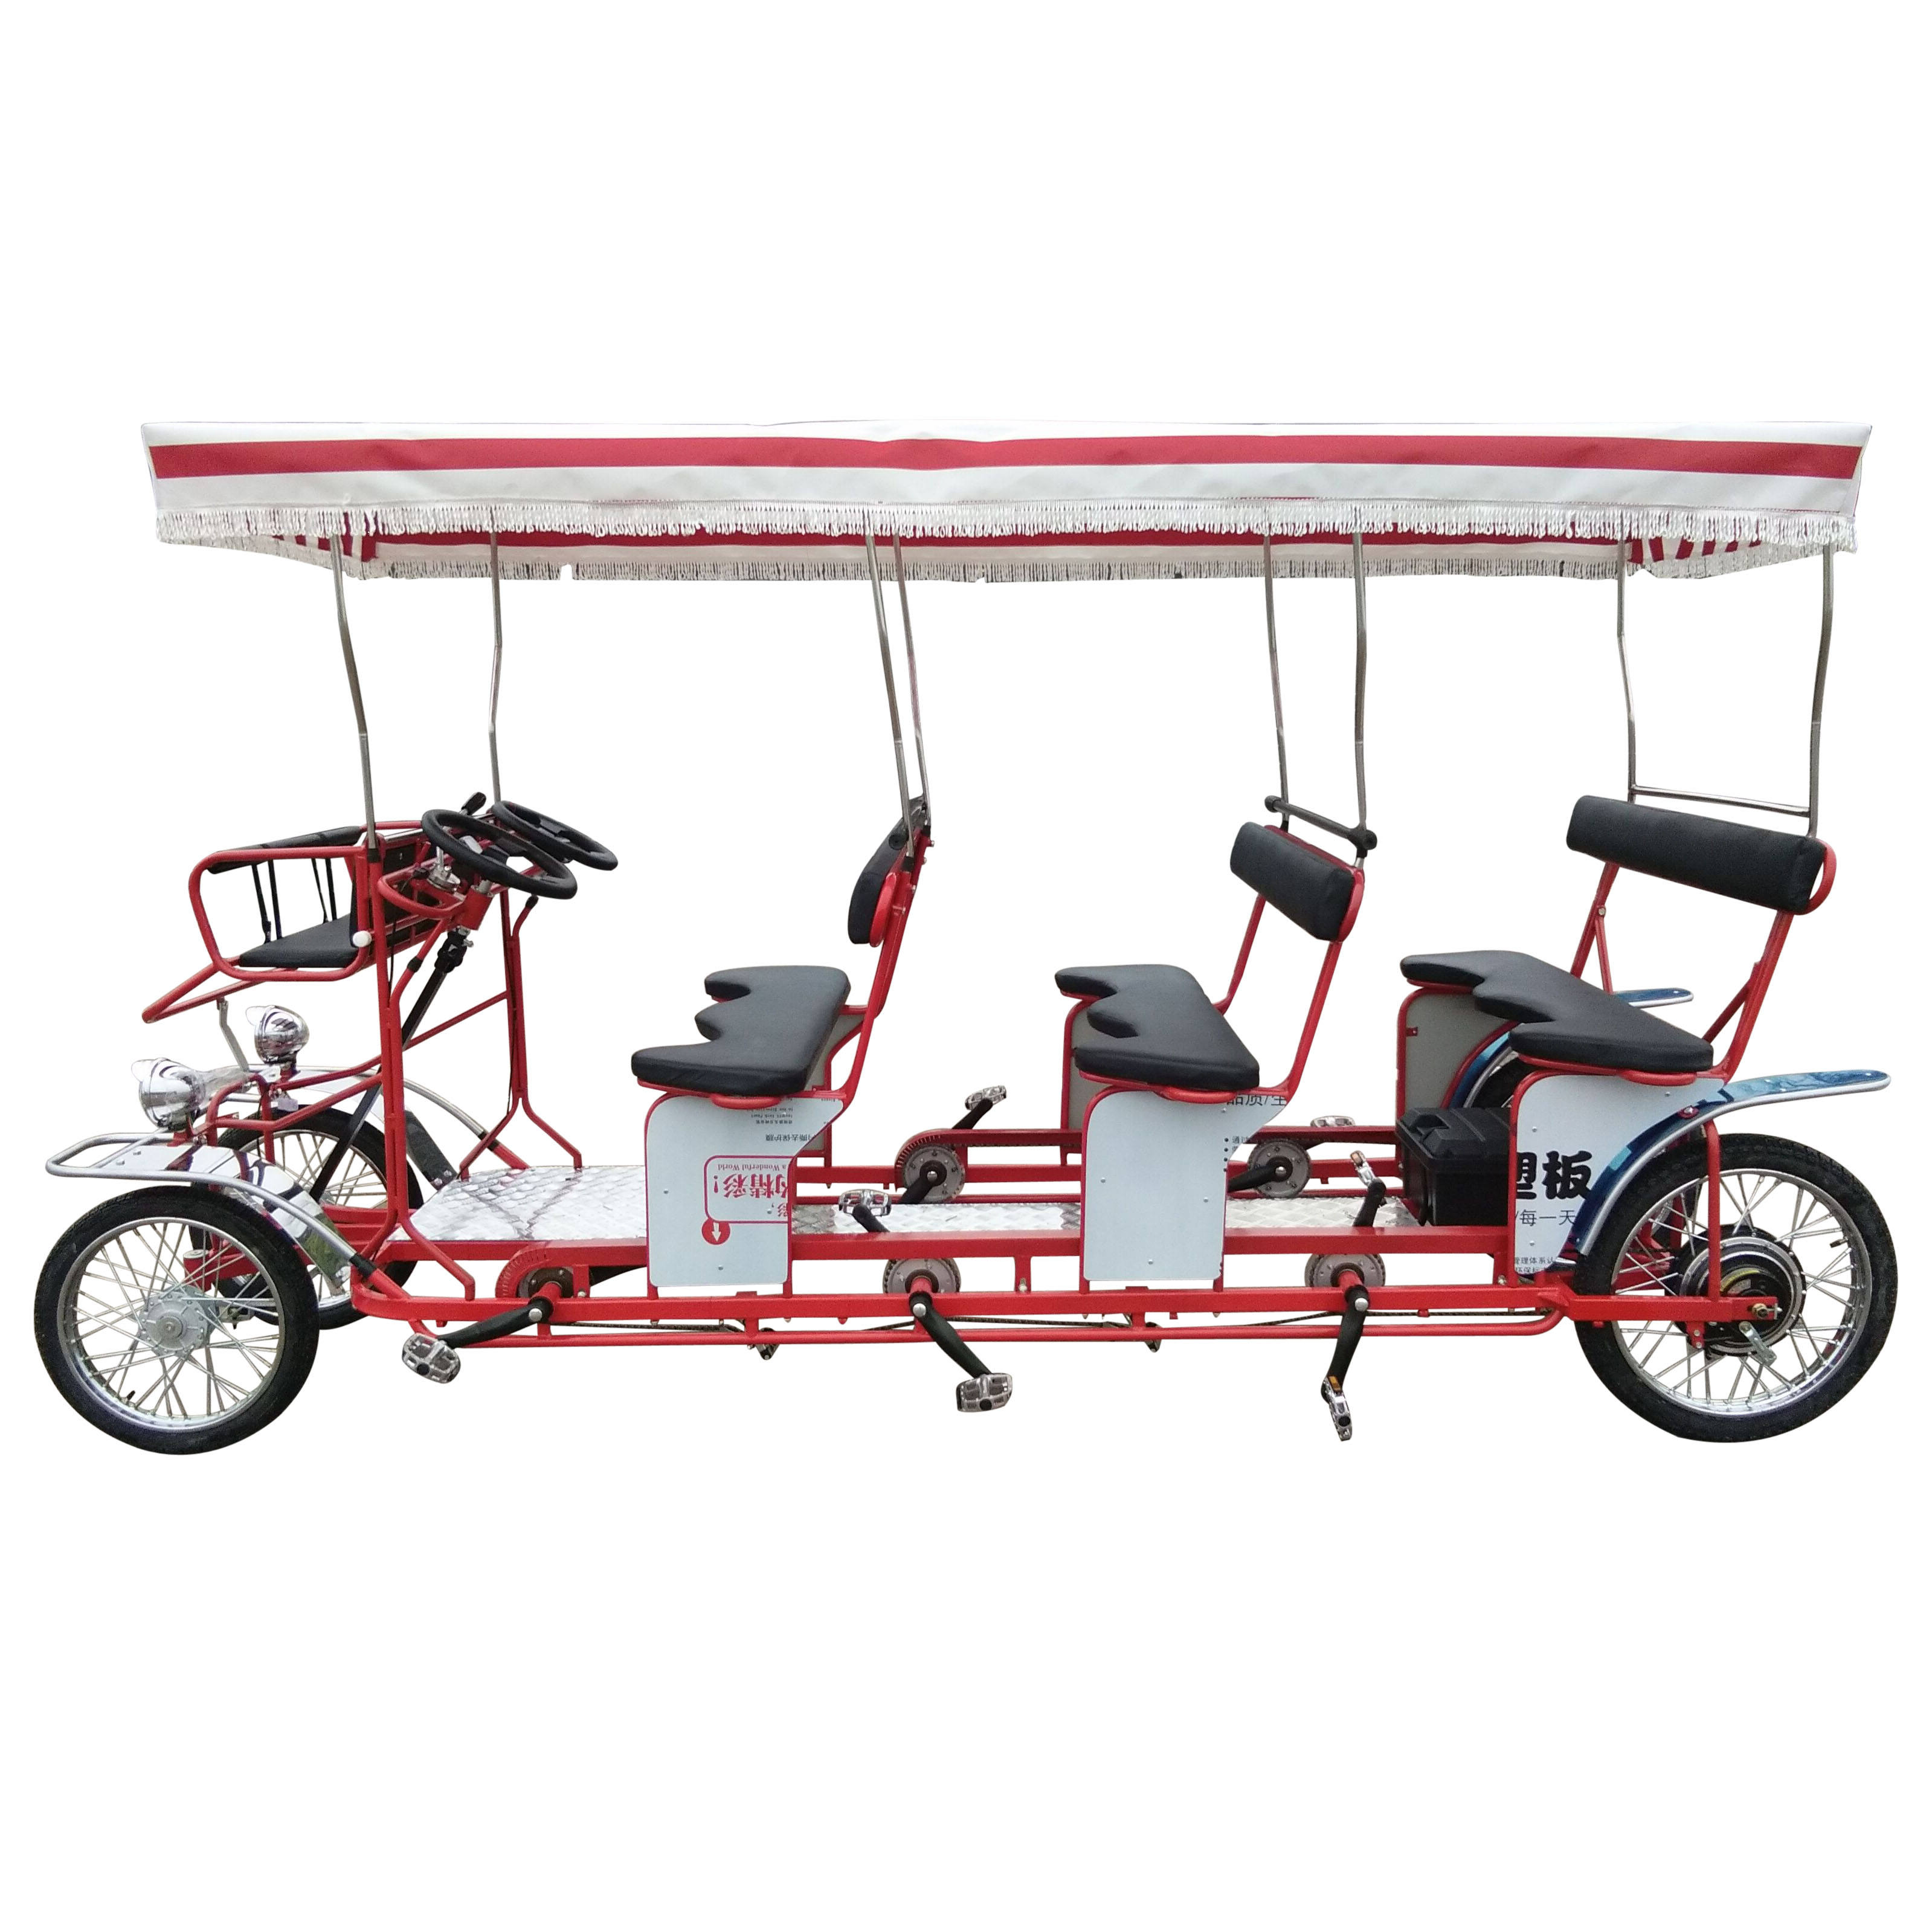 Hot Sale Family Pedal Leisure Surrey 4 Person And 6 Seat Electric Bike Four Wheel Bike For Tourists